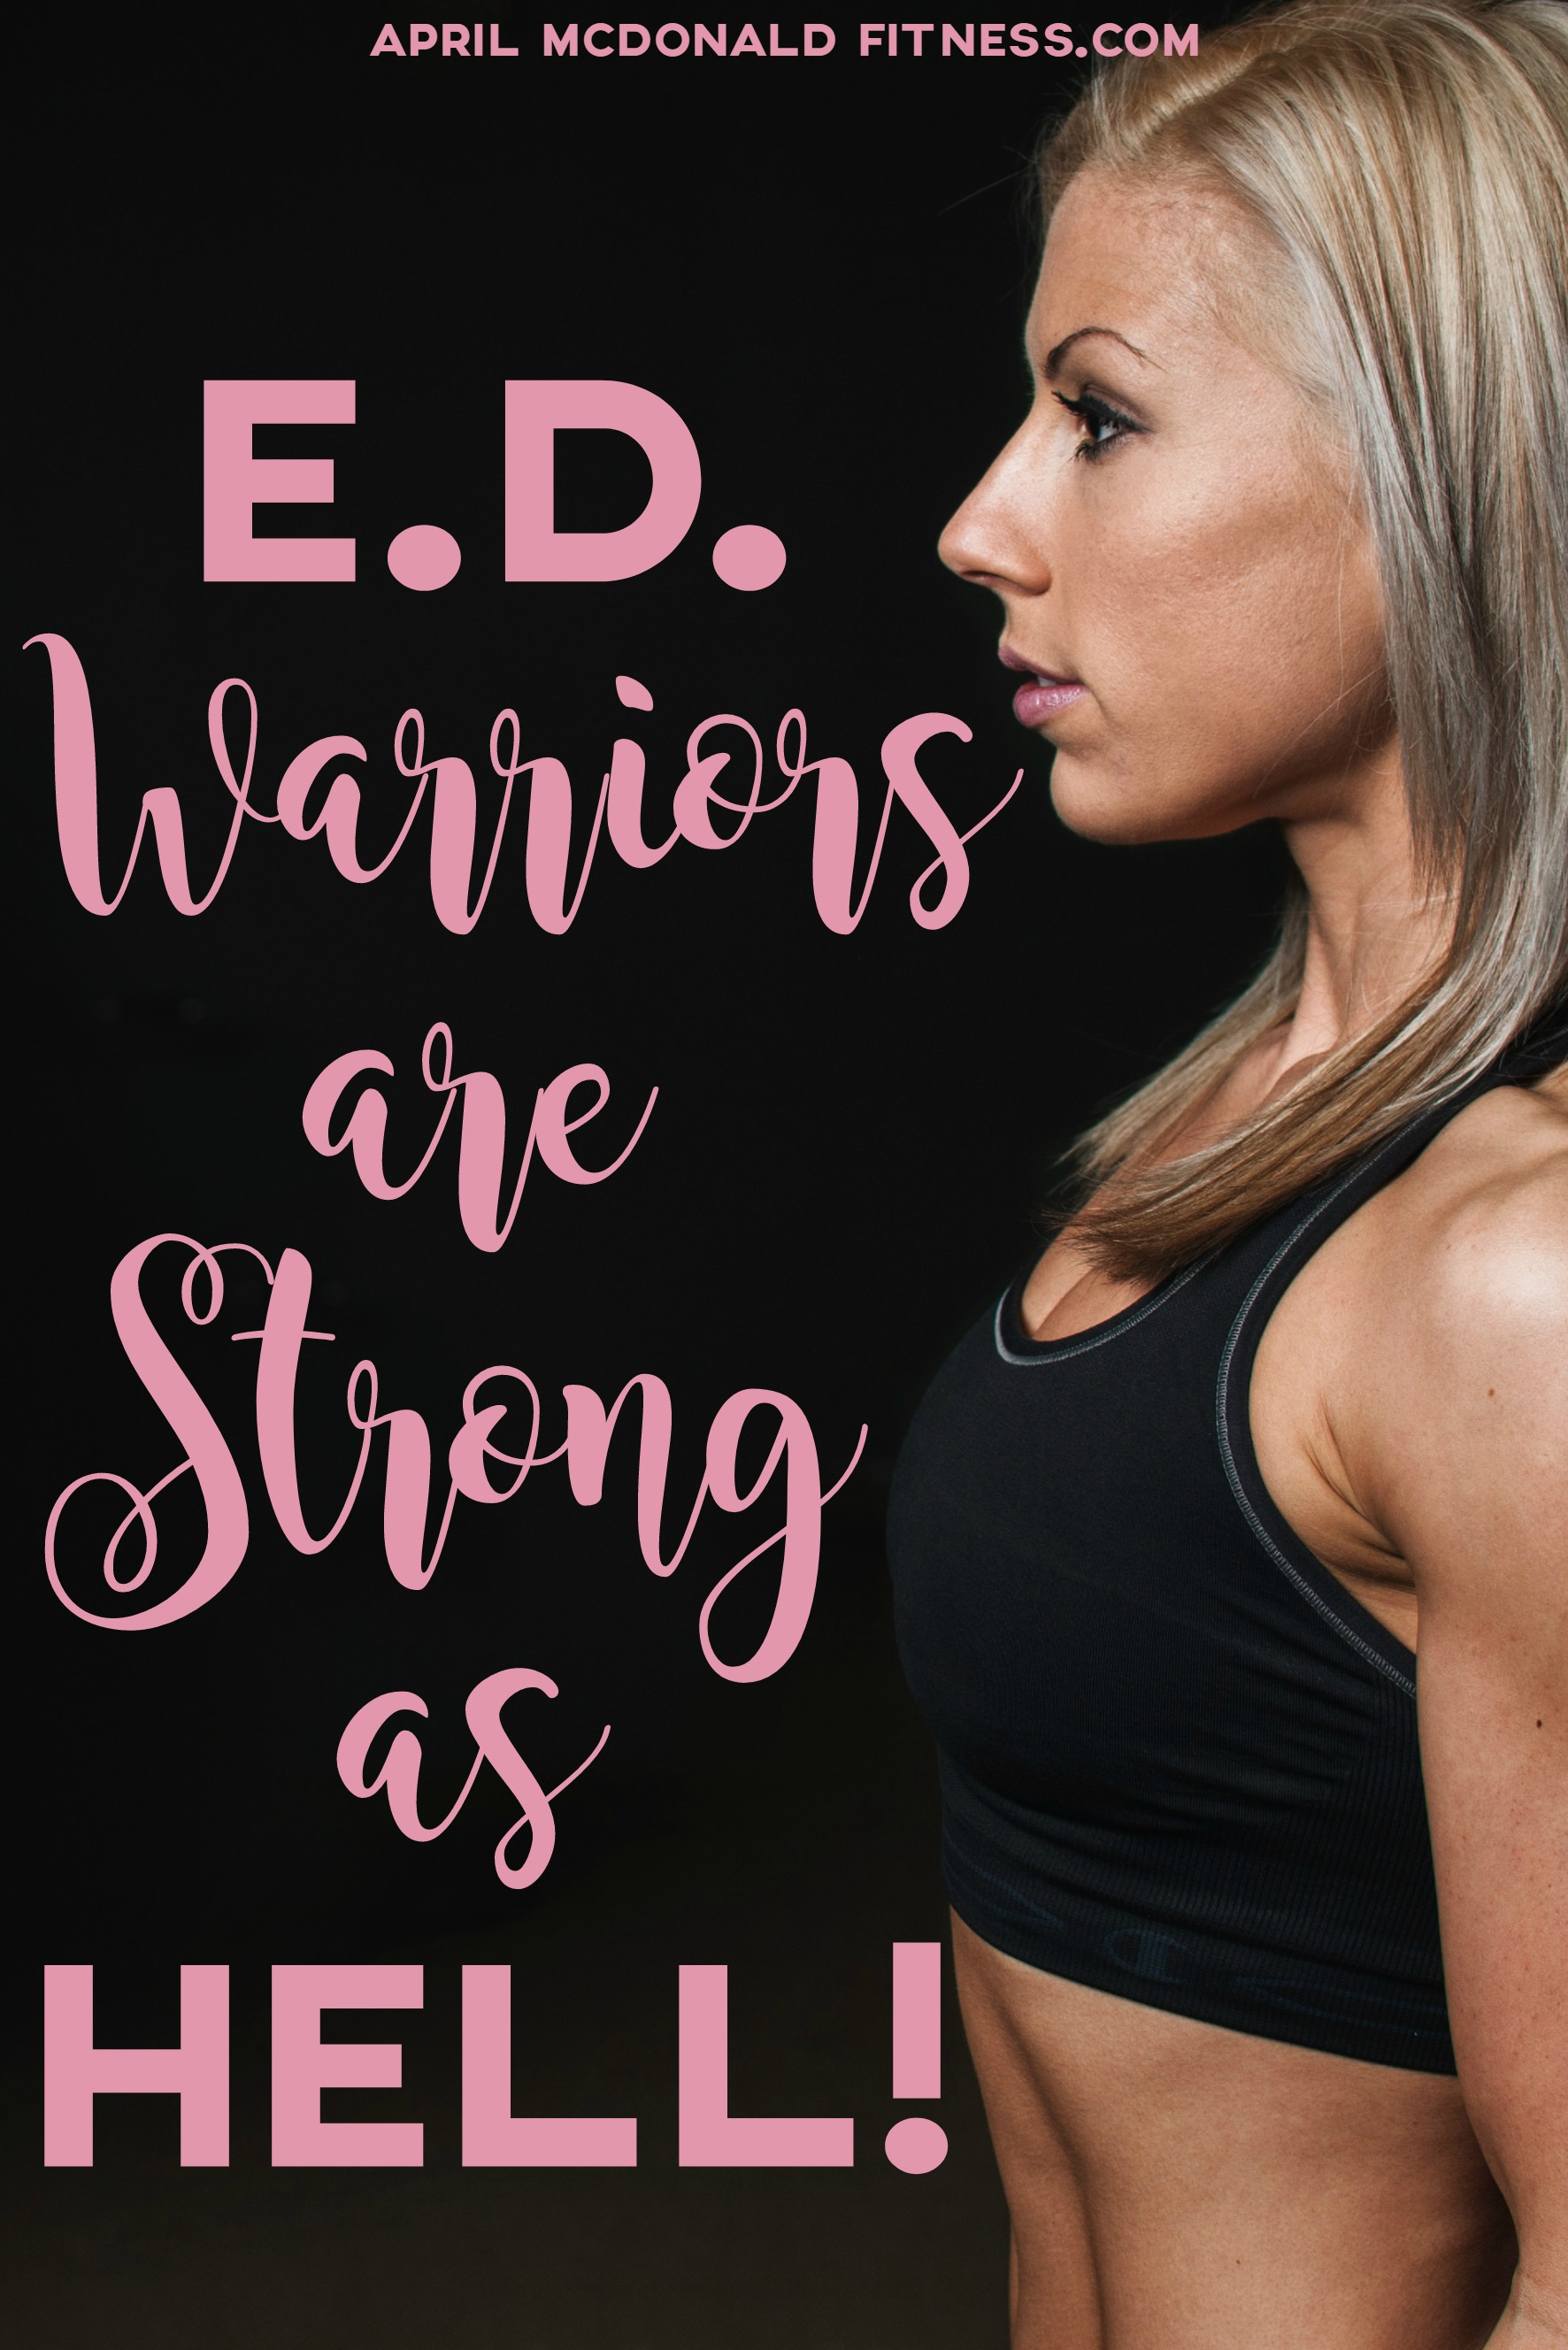 Don't let your eating disorder define you. Don't let it own you. You are a warrior. You are stronger than you know. You can overcome it.